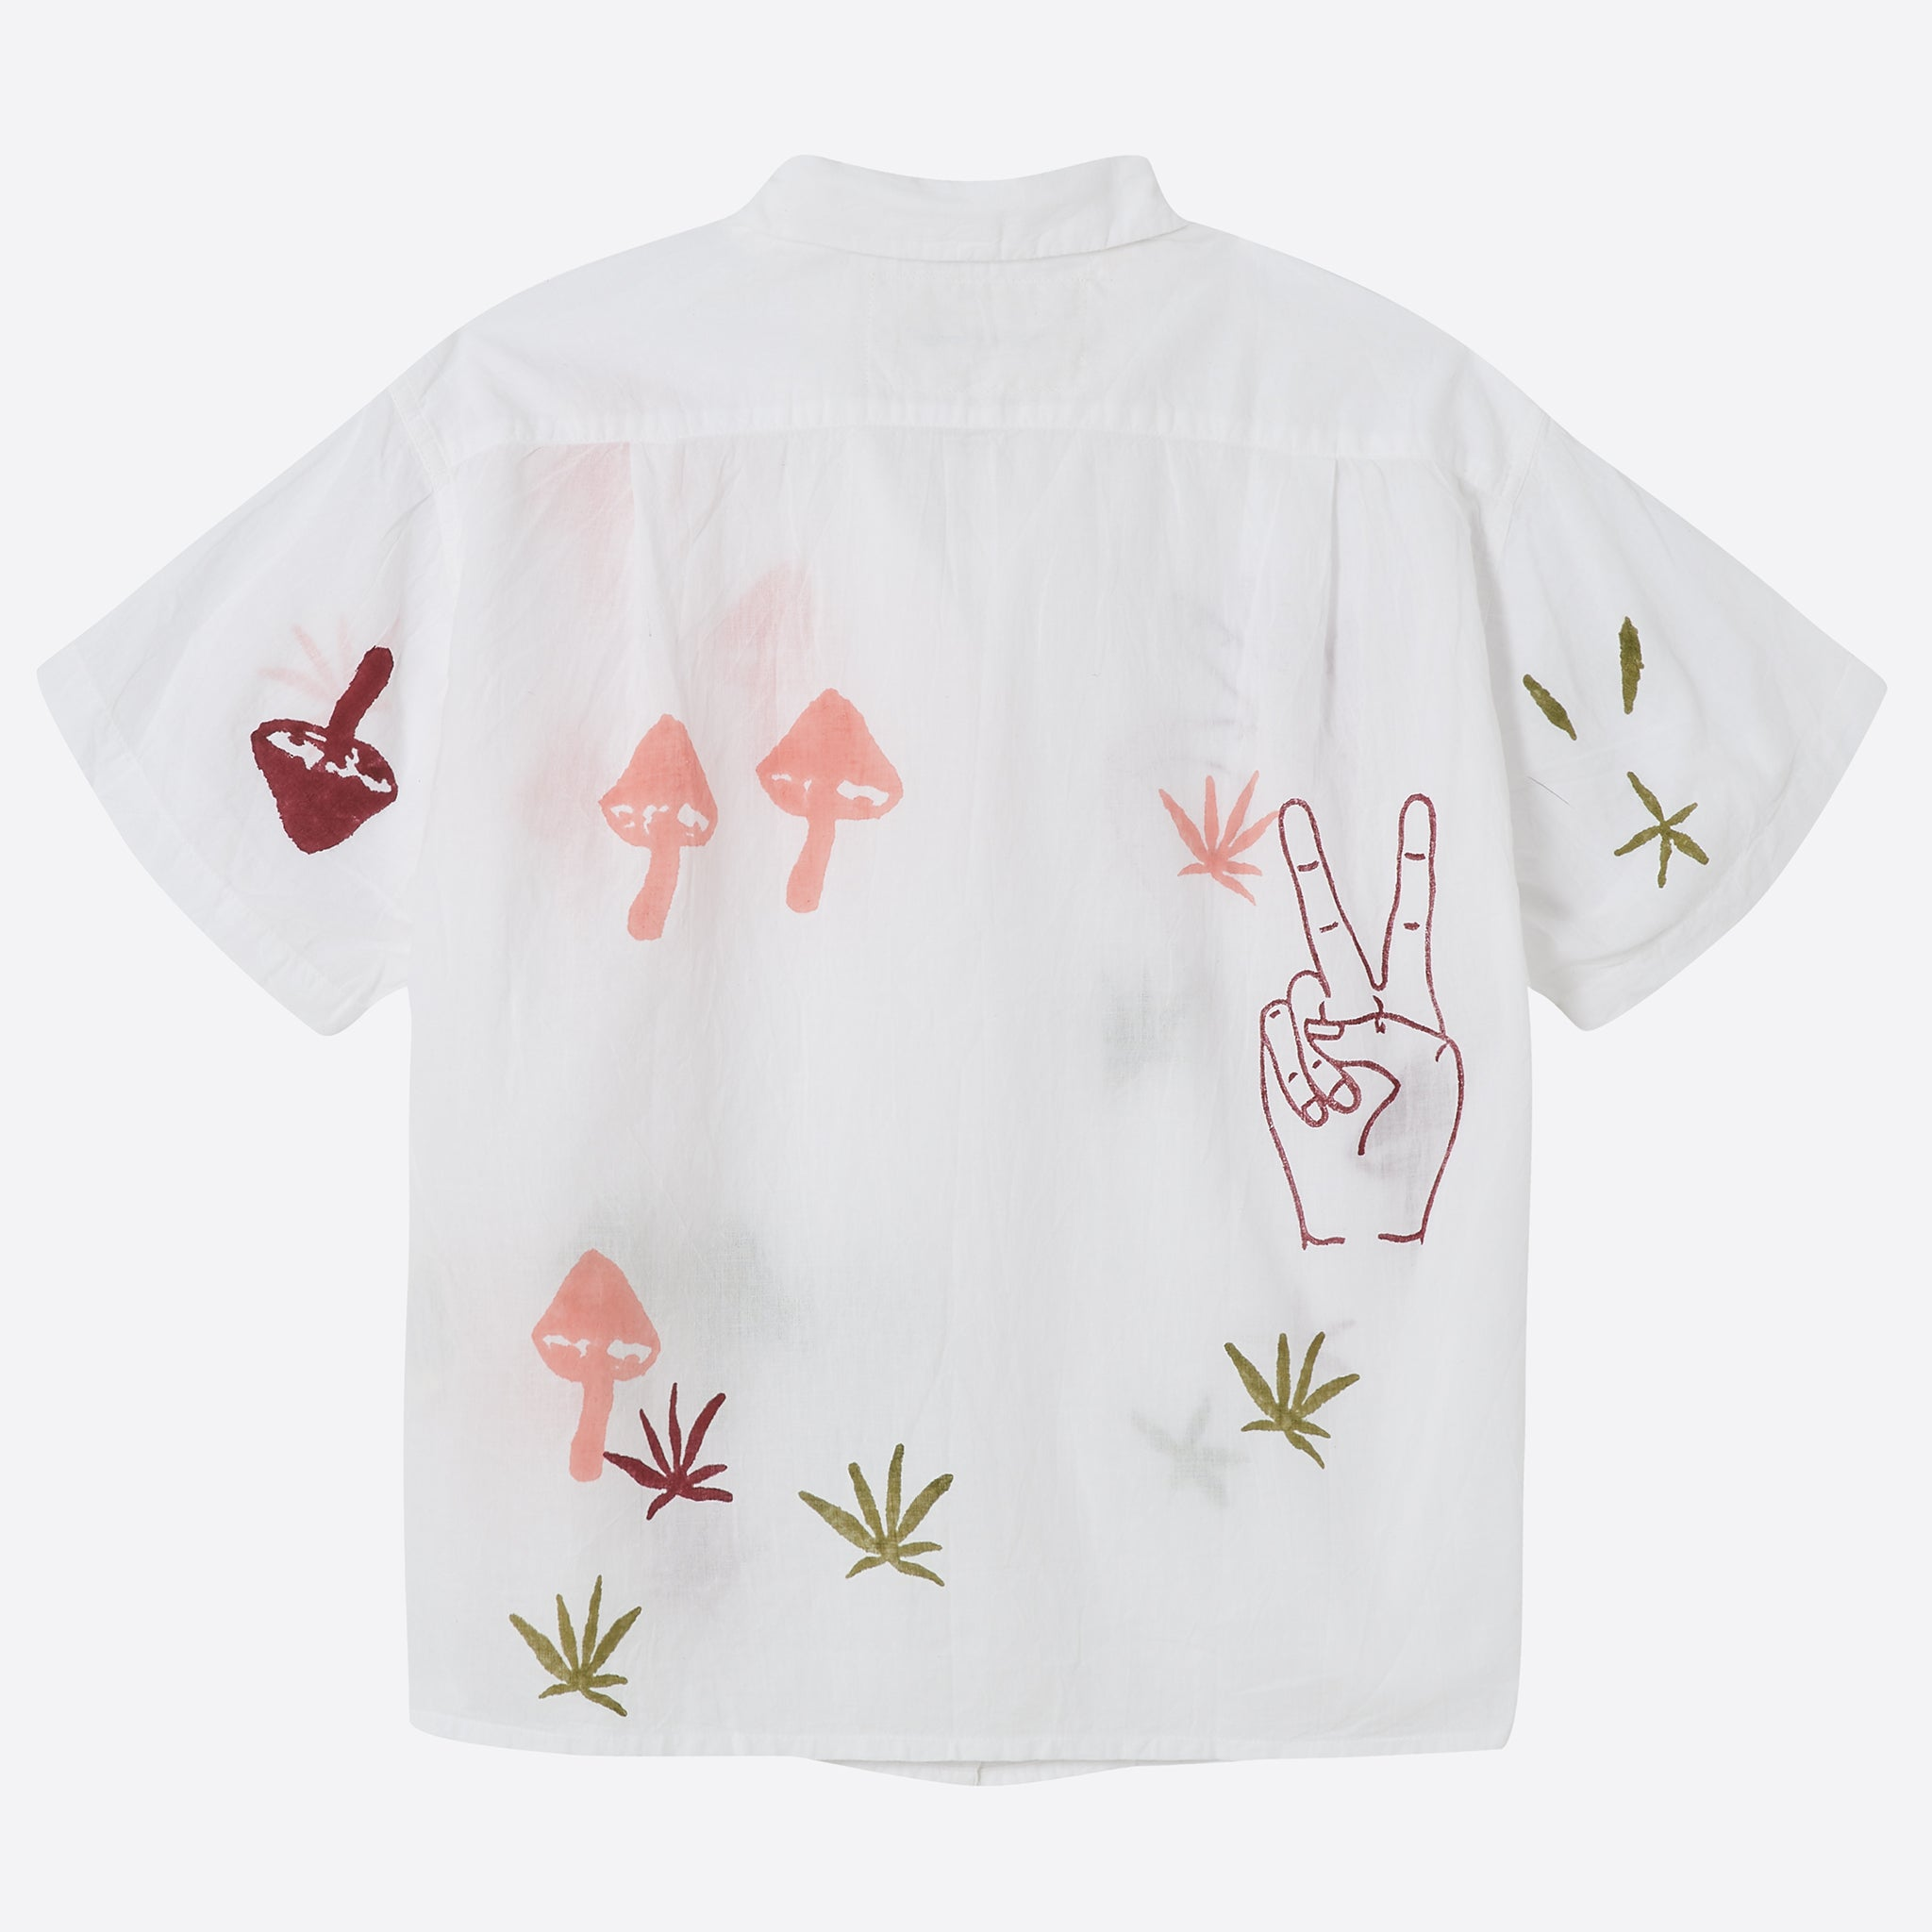 STORY mfg Shorty Shirt in Strange Trip